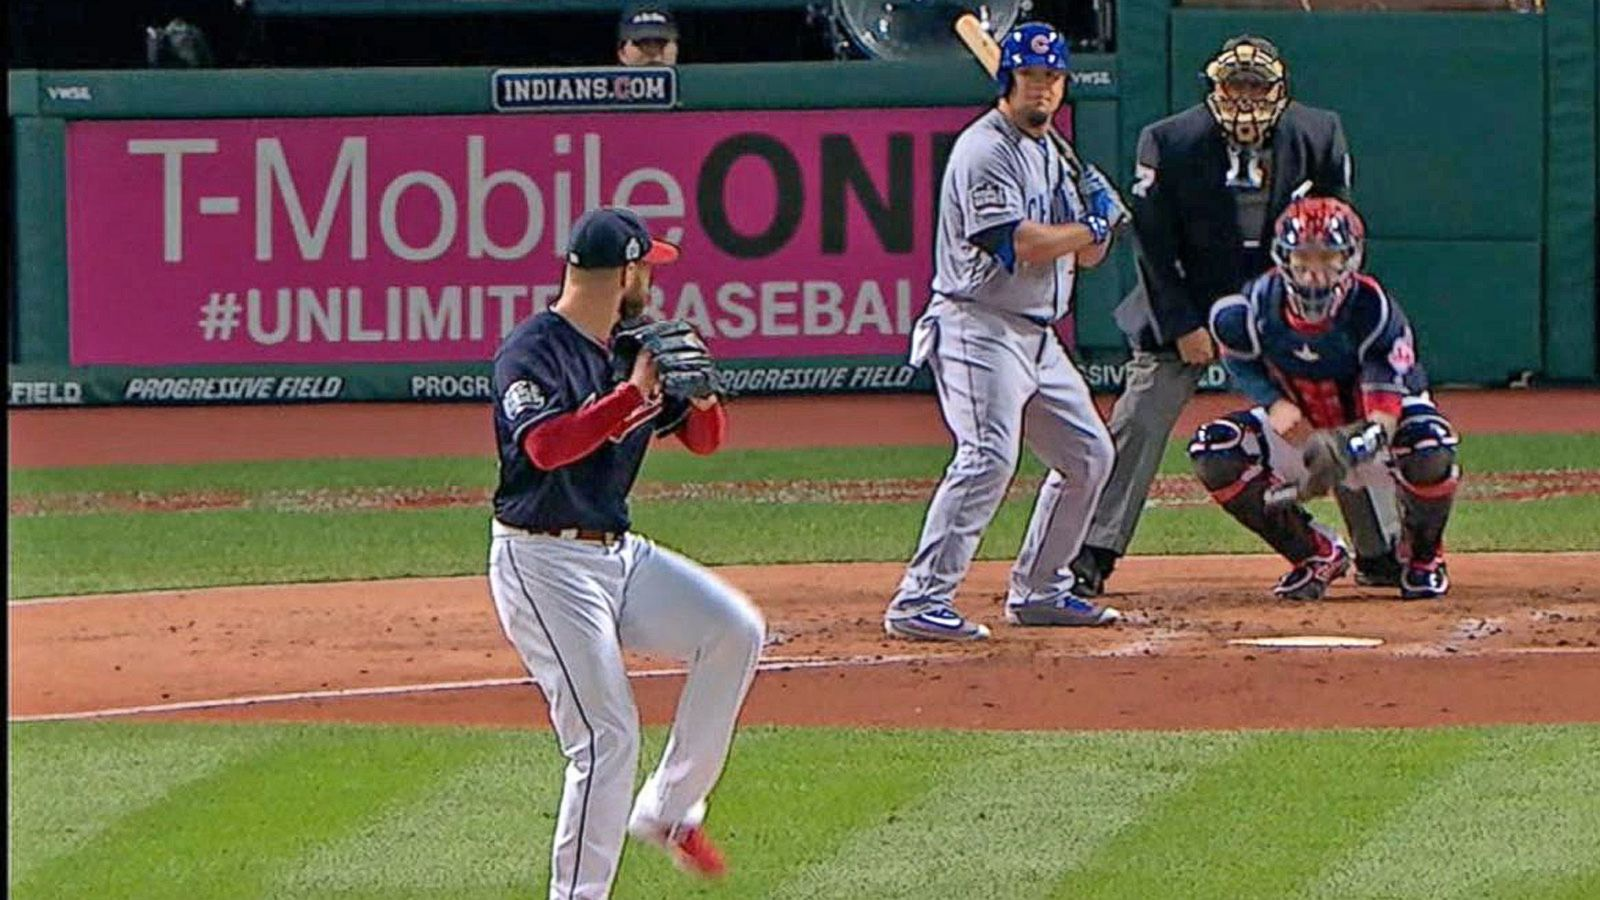 VIDEO: Indians Pitcher Corey Kluber Sets World Series Record